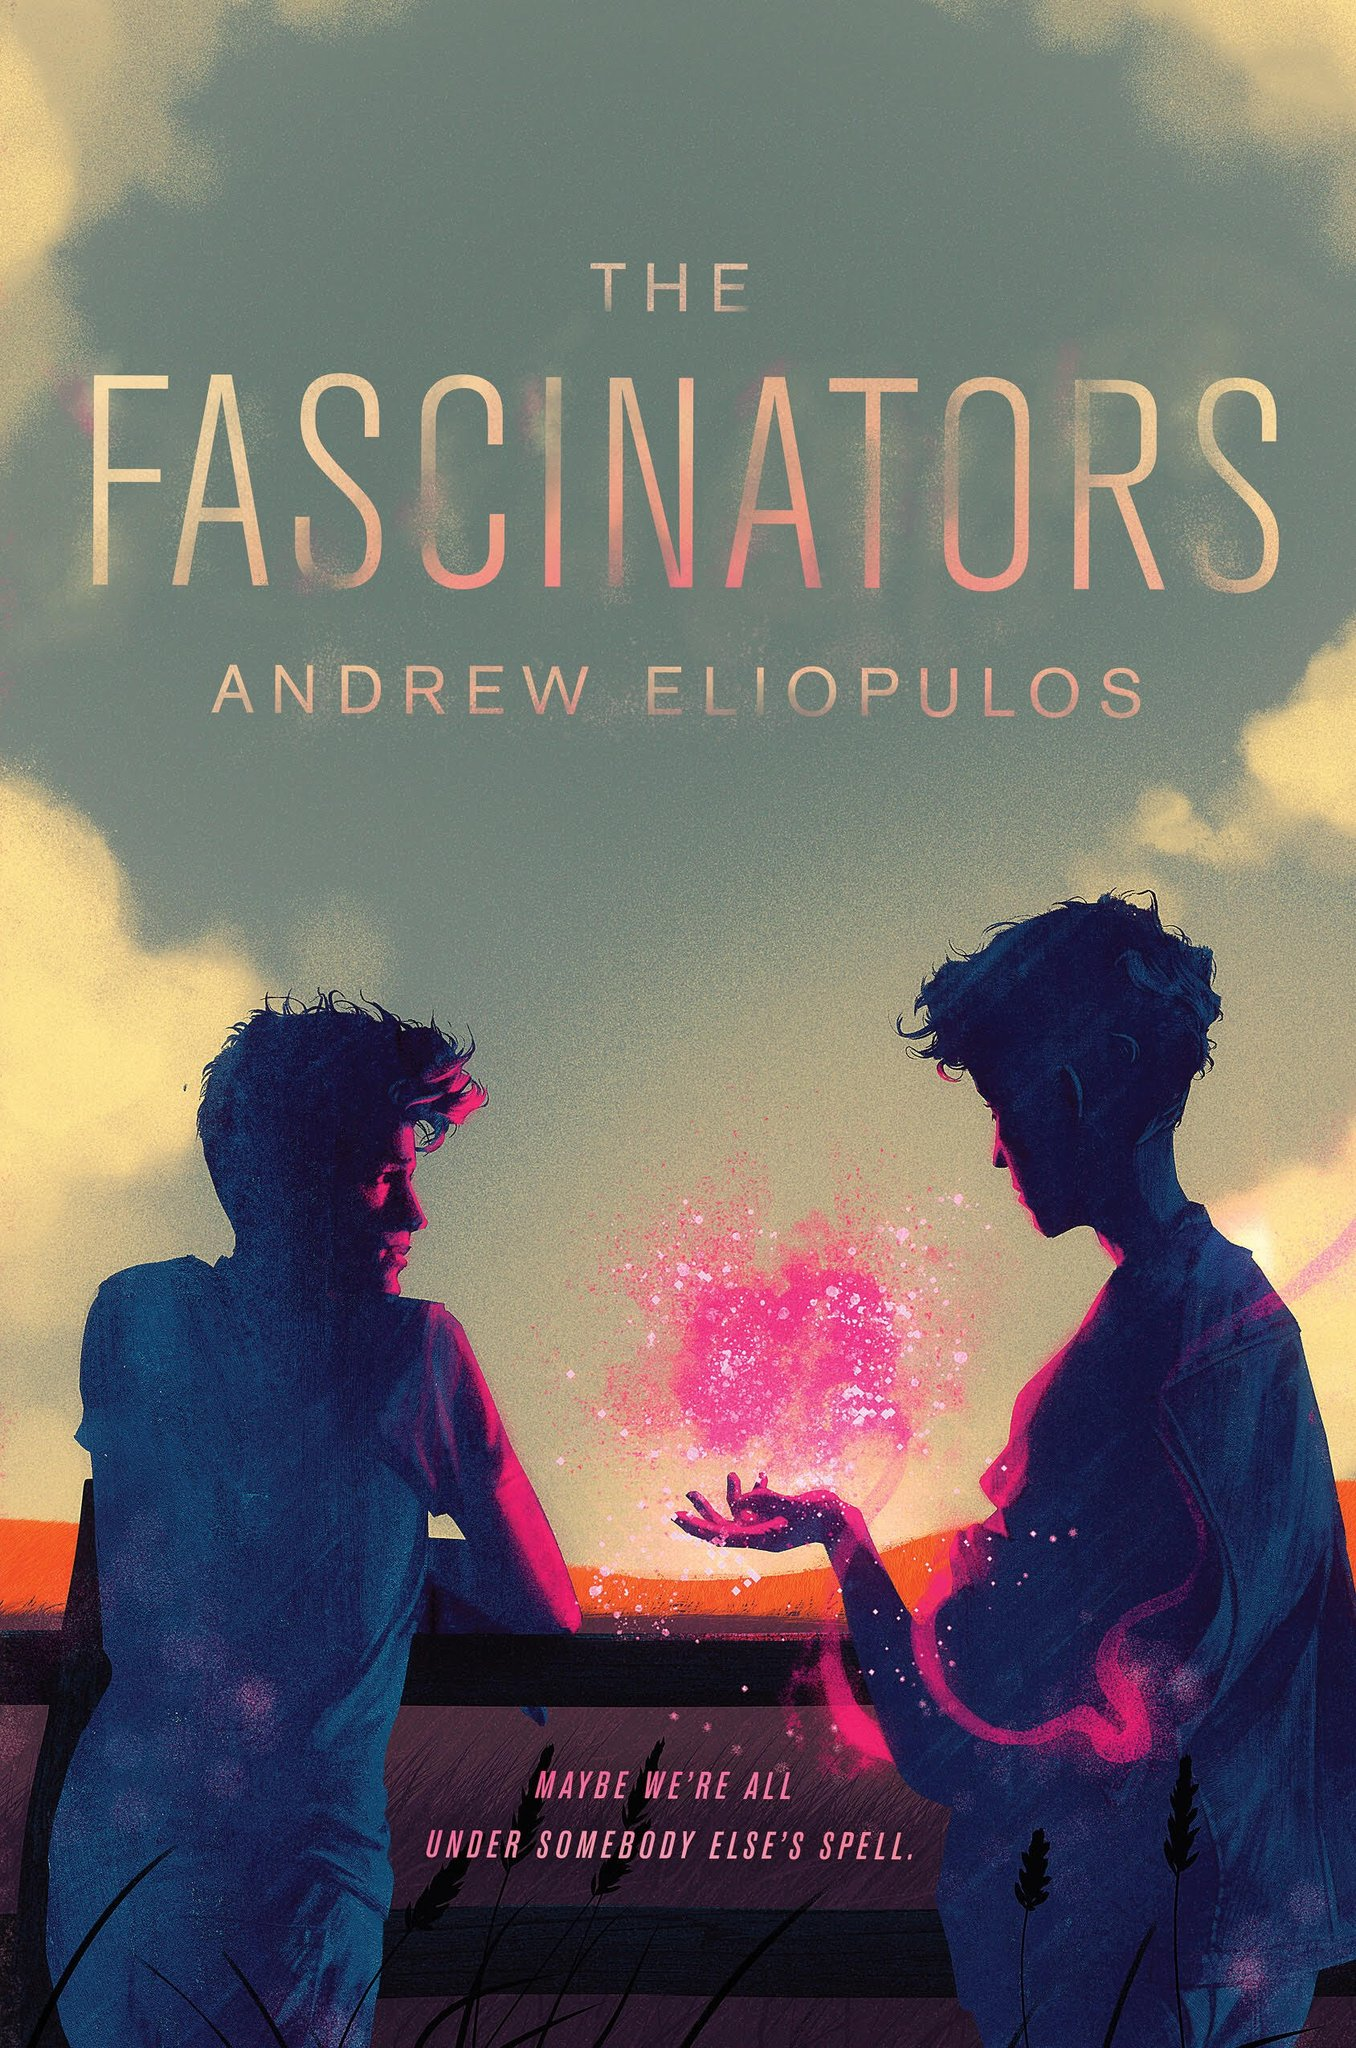 The Fascinators by Andrew Eliopulos